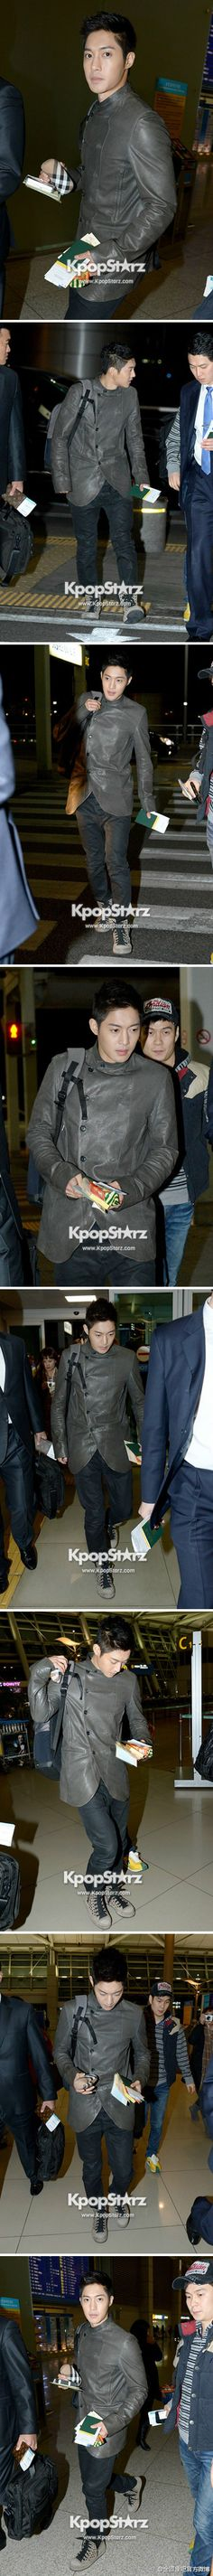 Kim Hyun Joong before his appearance at the 2K13FEELKOREA event in Brazil